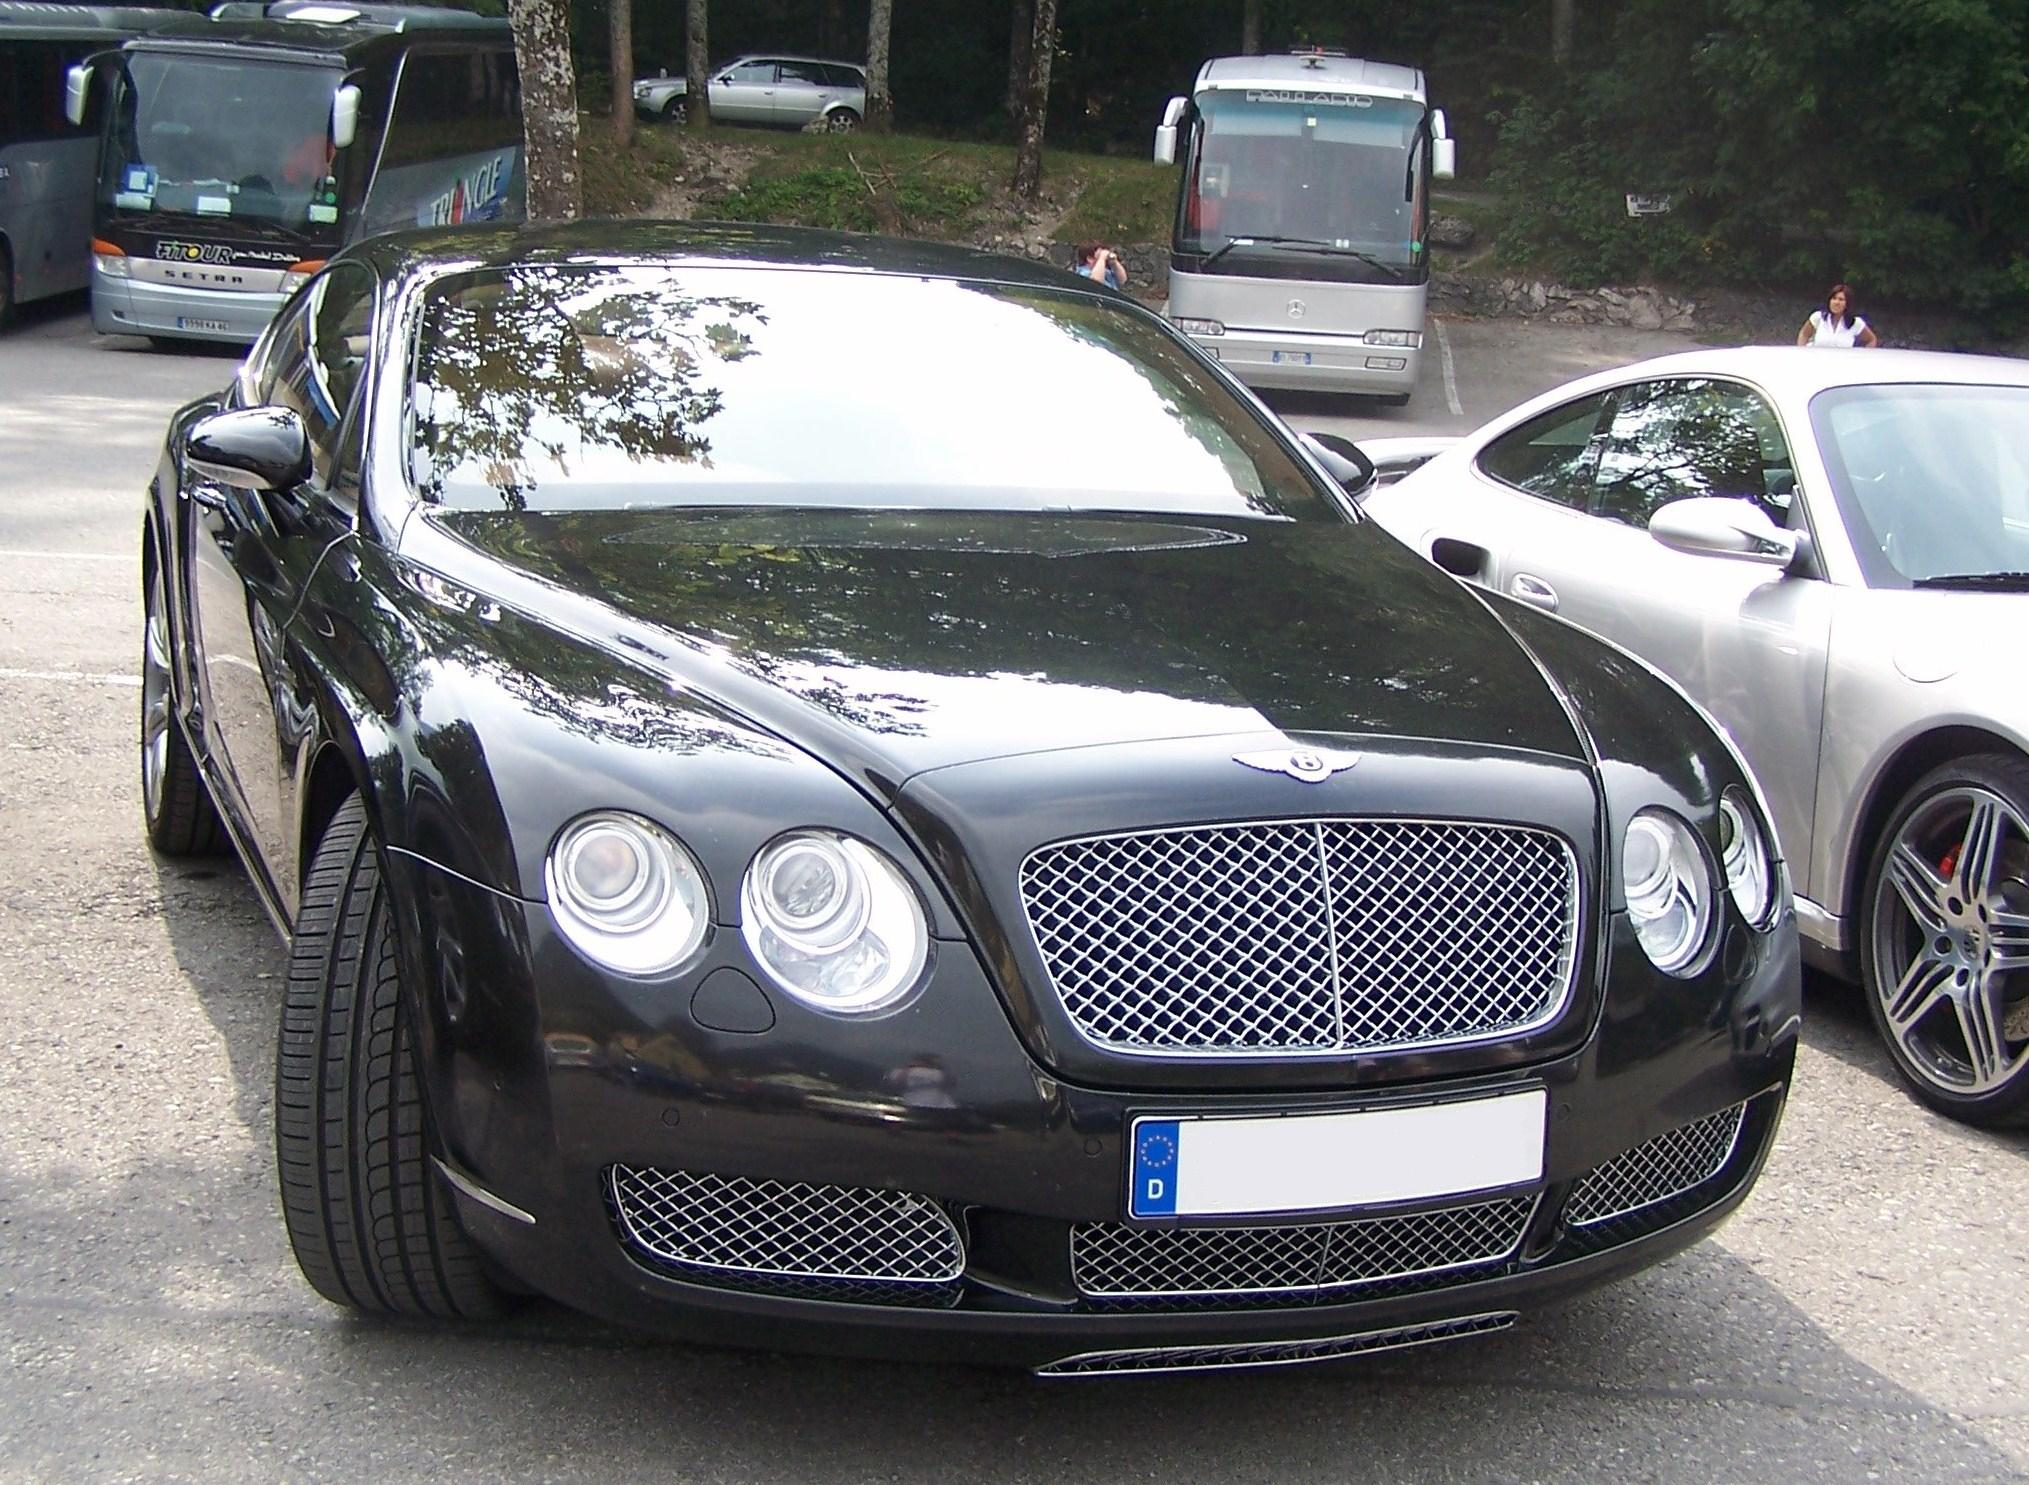 If you have good credit and can afford to make payments on a Bentley, well find you a lender who can get you into a Bentley.